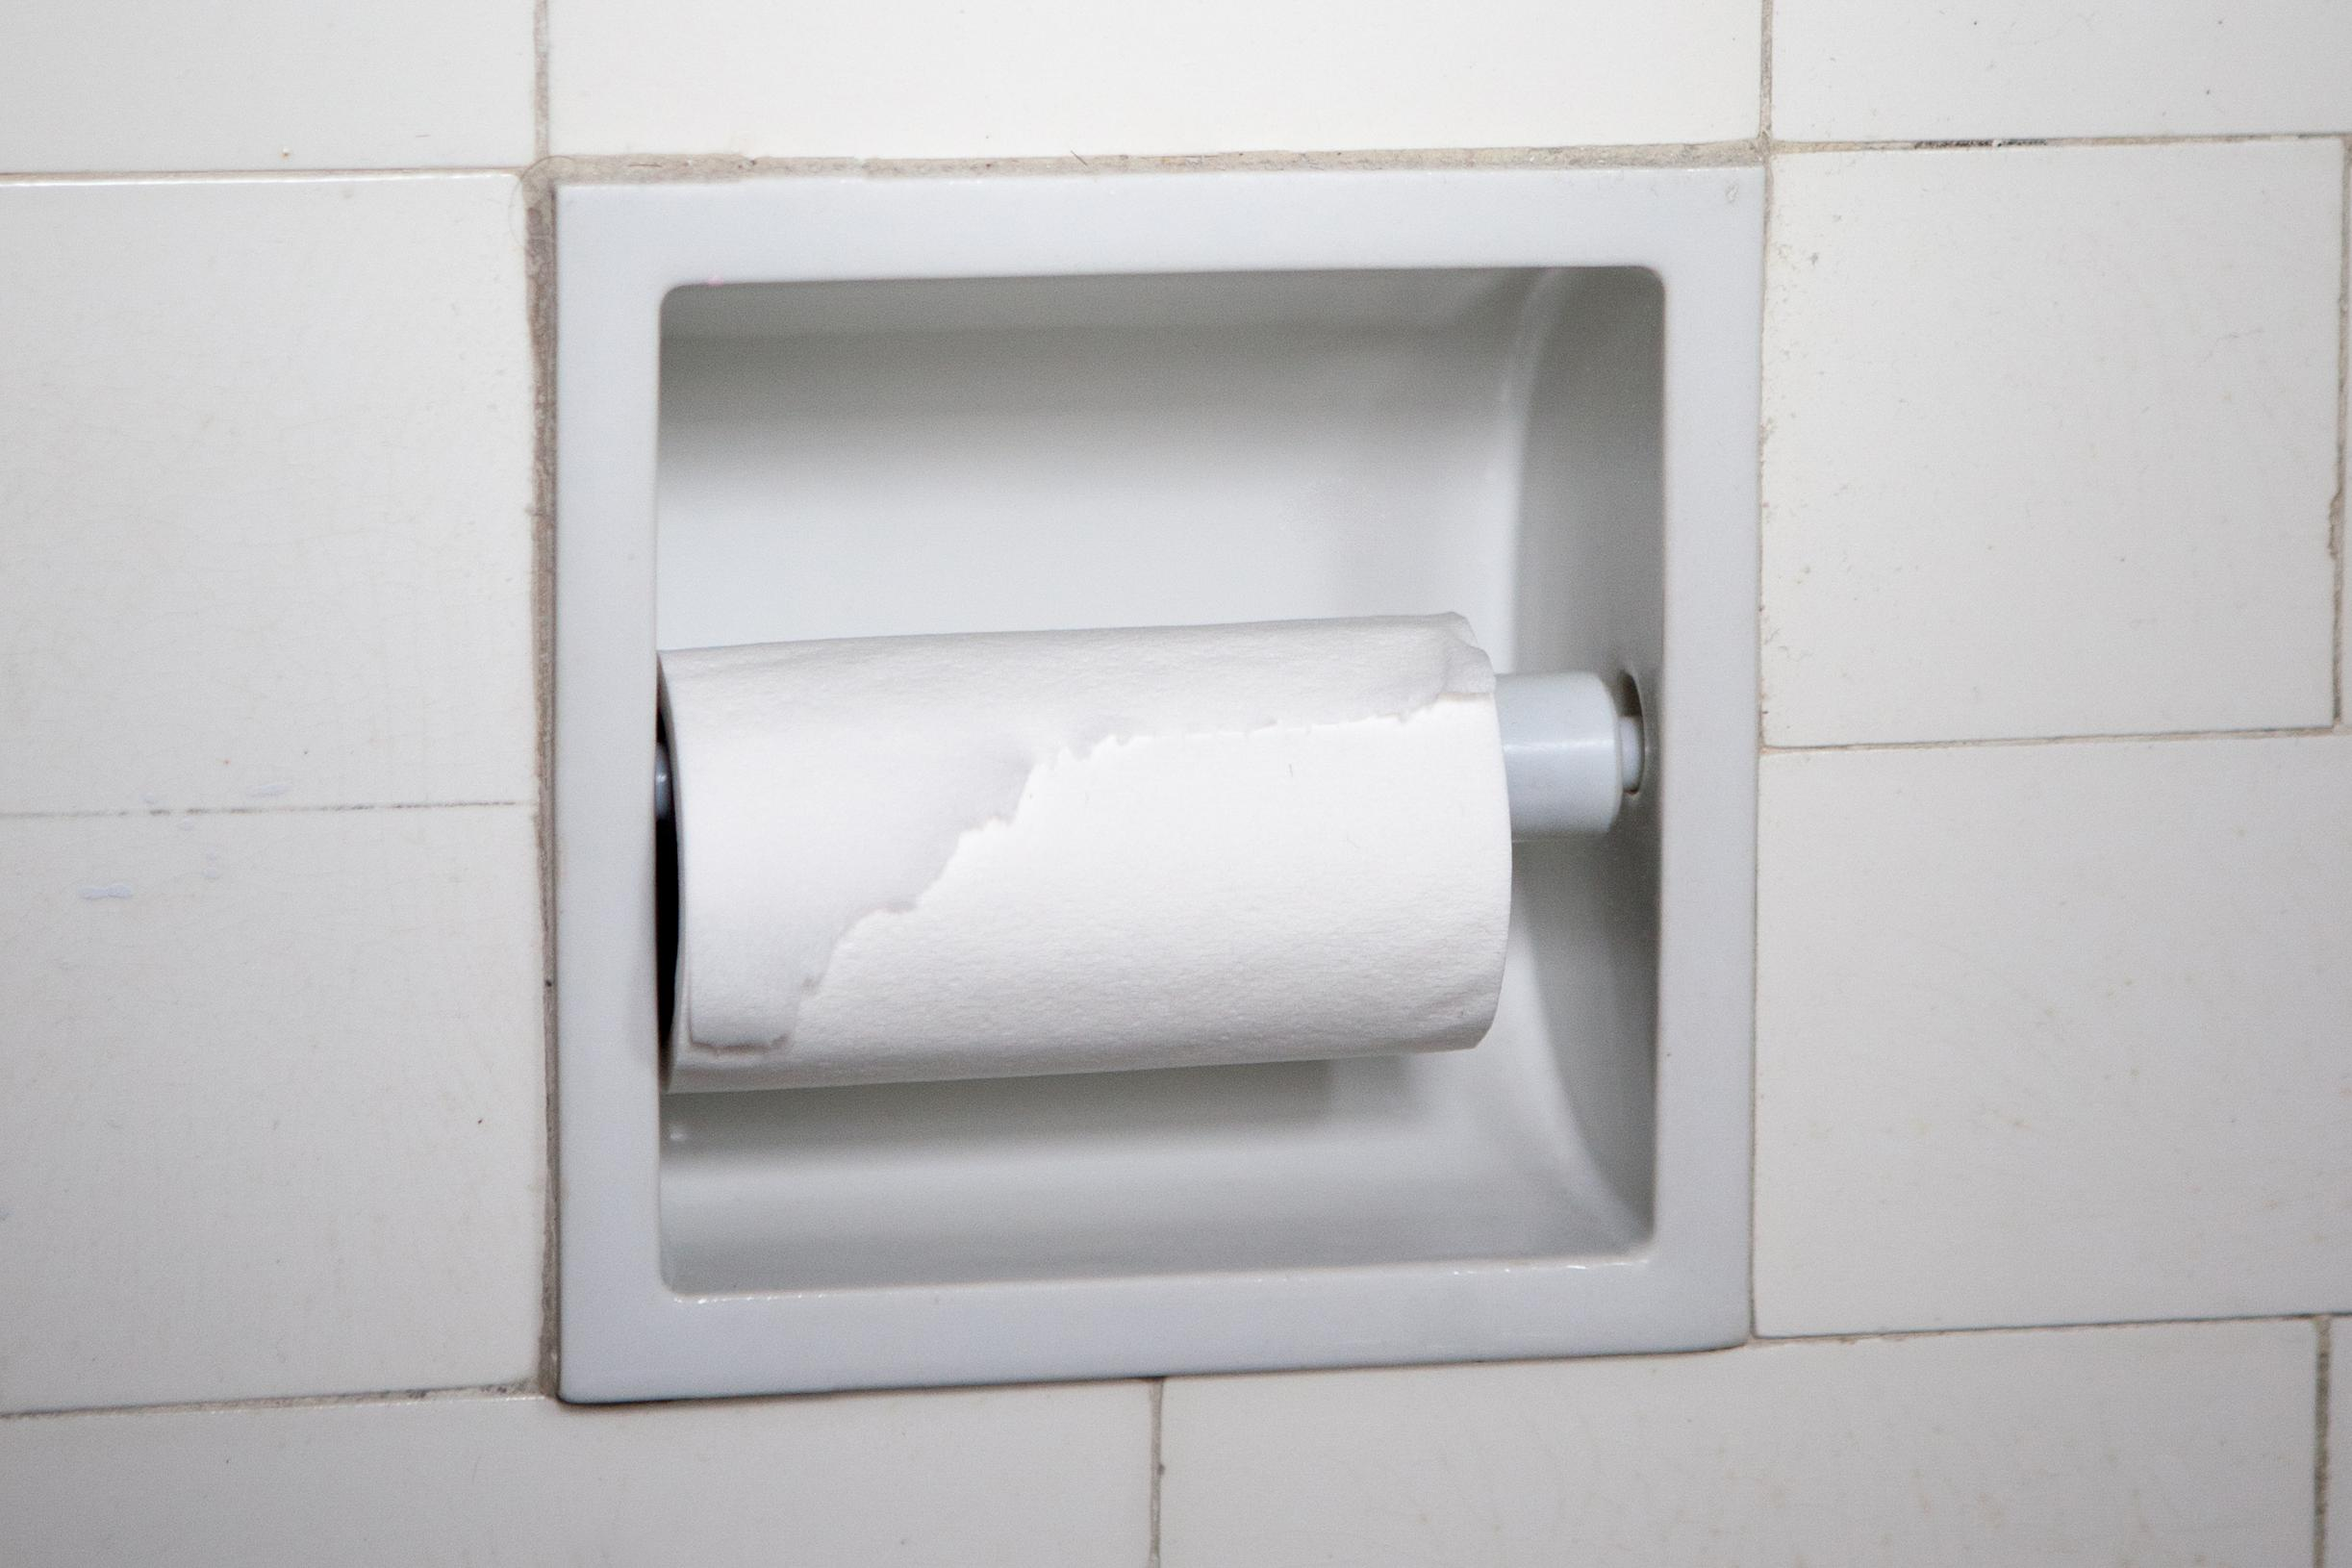 toilet paper rolls are getting